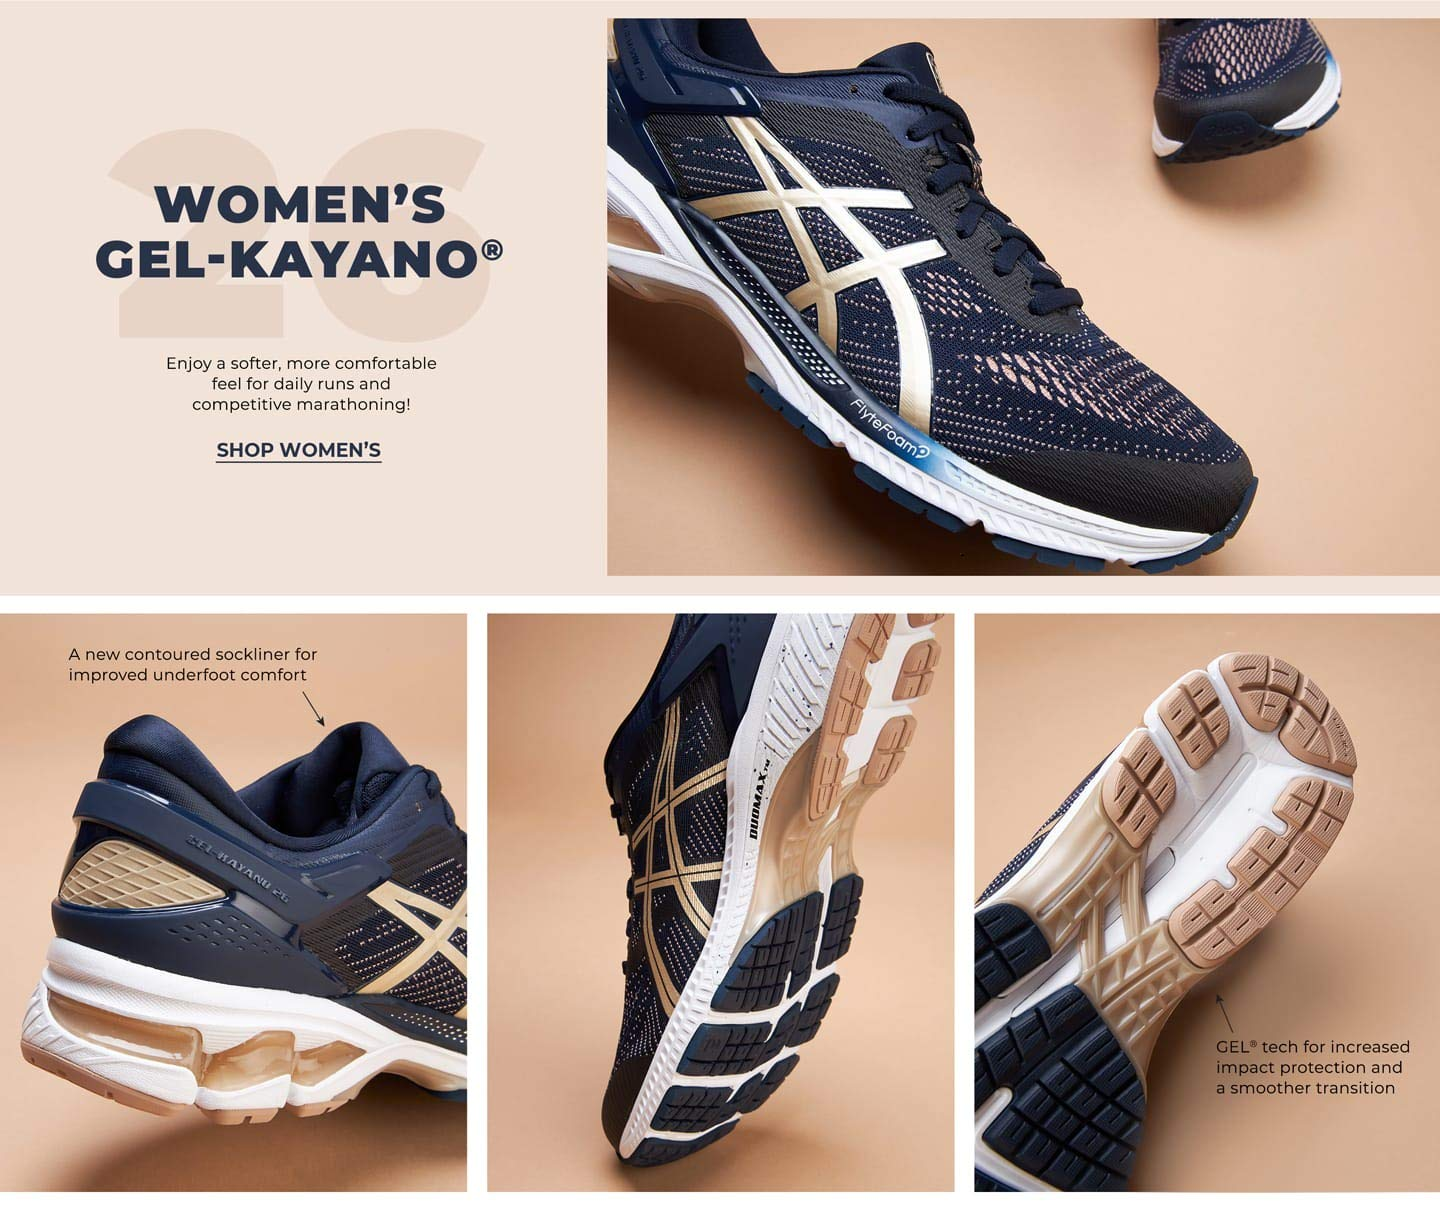 Women's GEL-Kayano™ 26. Enjoy a softer, more comfortable feel for daily runs and competitive marathoning! Shop Women's. GEL™ tech for increased impact protection and a smoother transition. A new contoured sockliner for improved underfoot comfort.